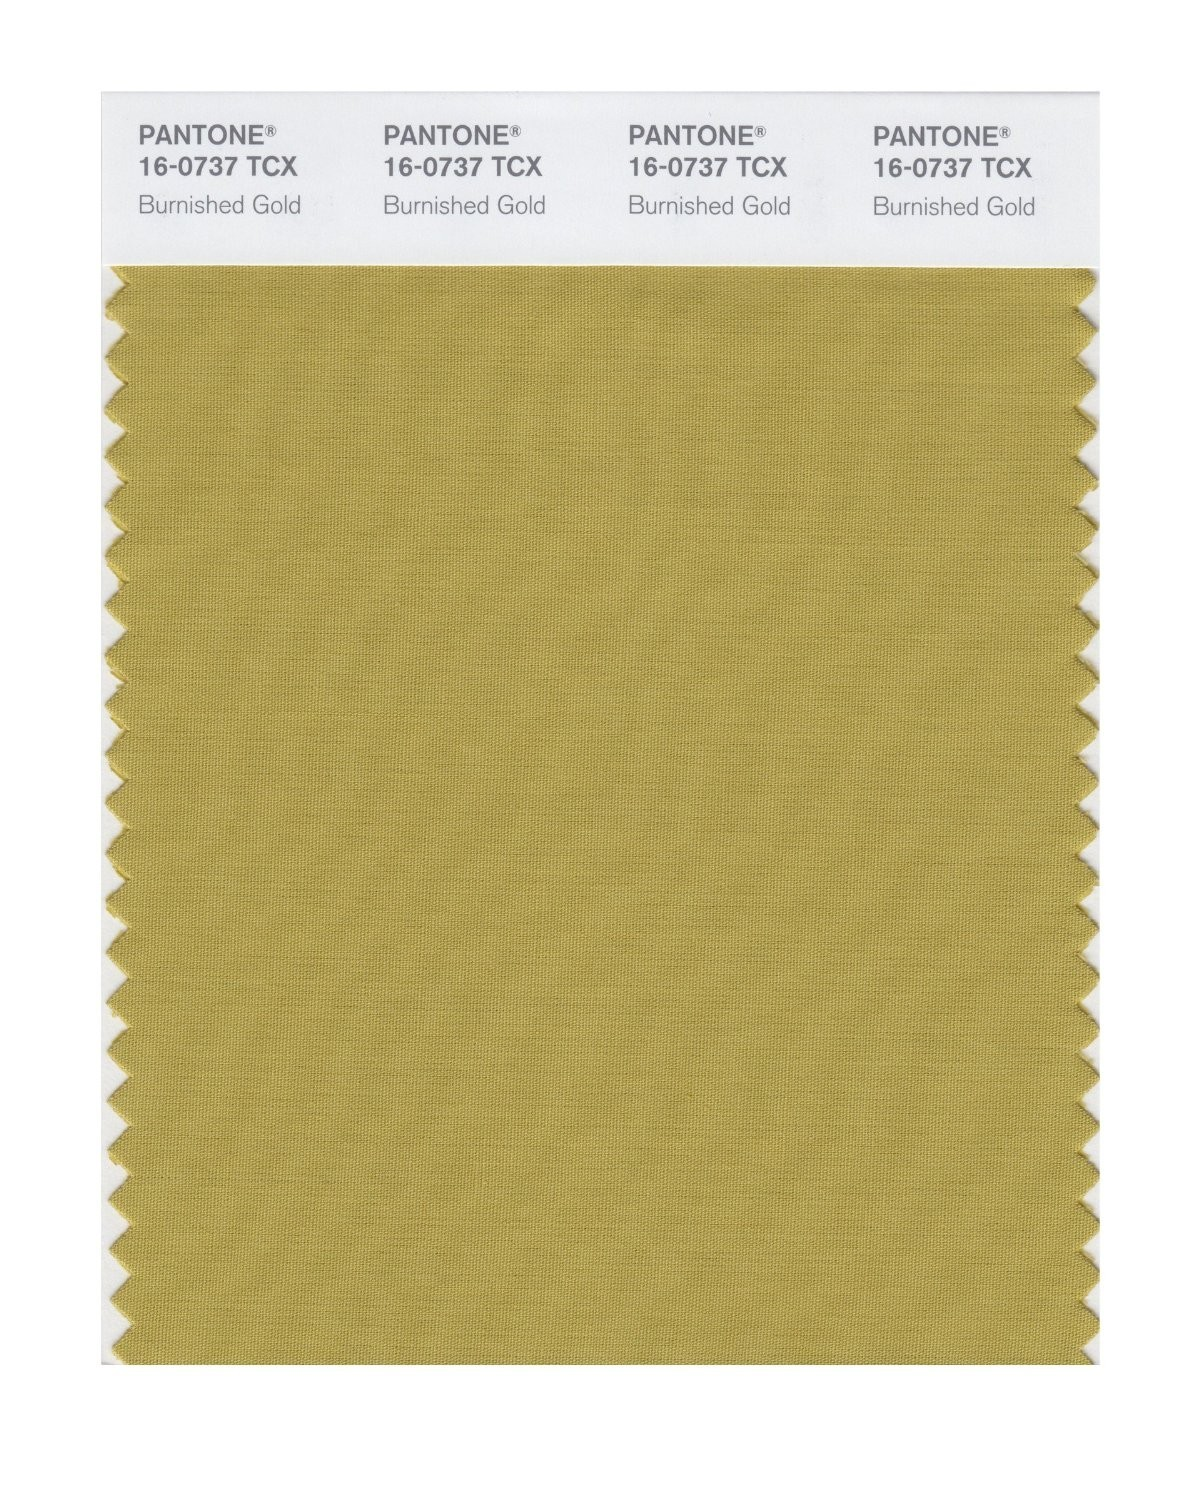 Pantone 16-0737 TCX Swatch Card Burnished Gold